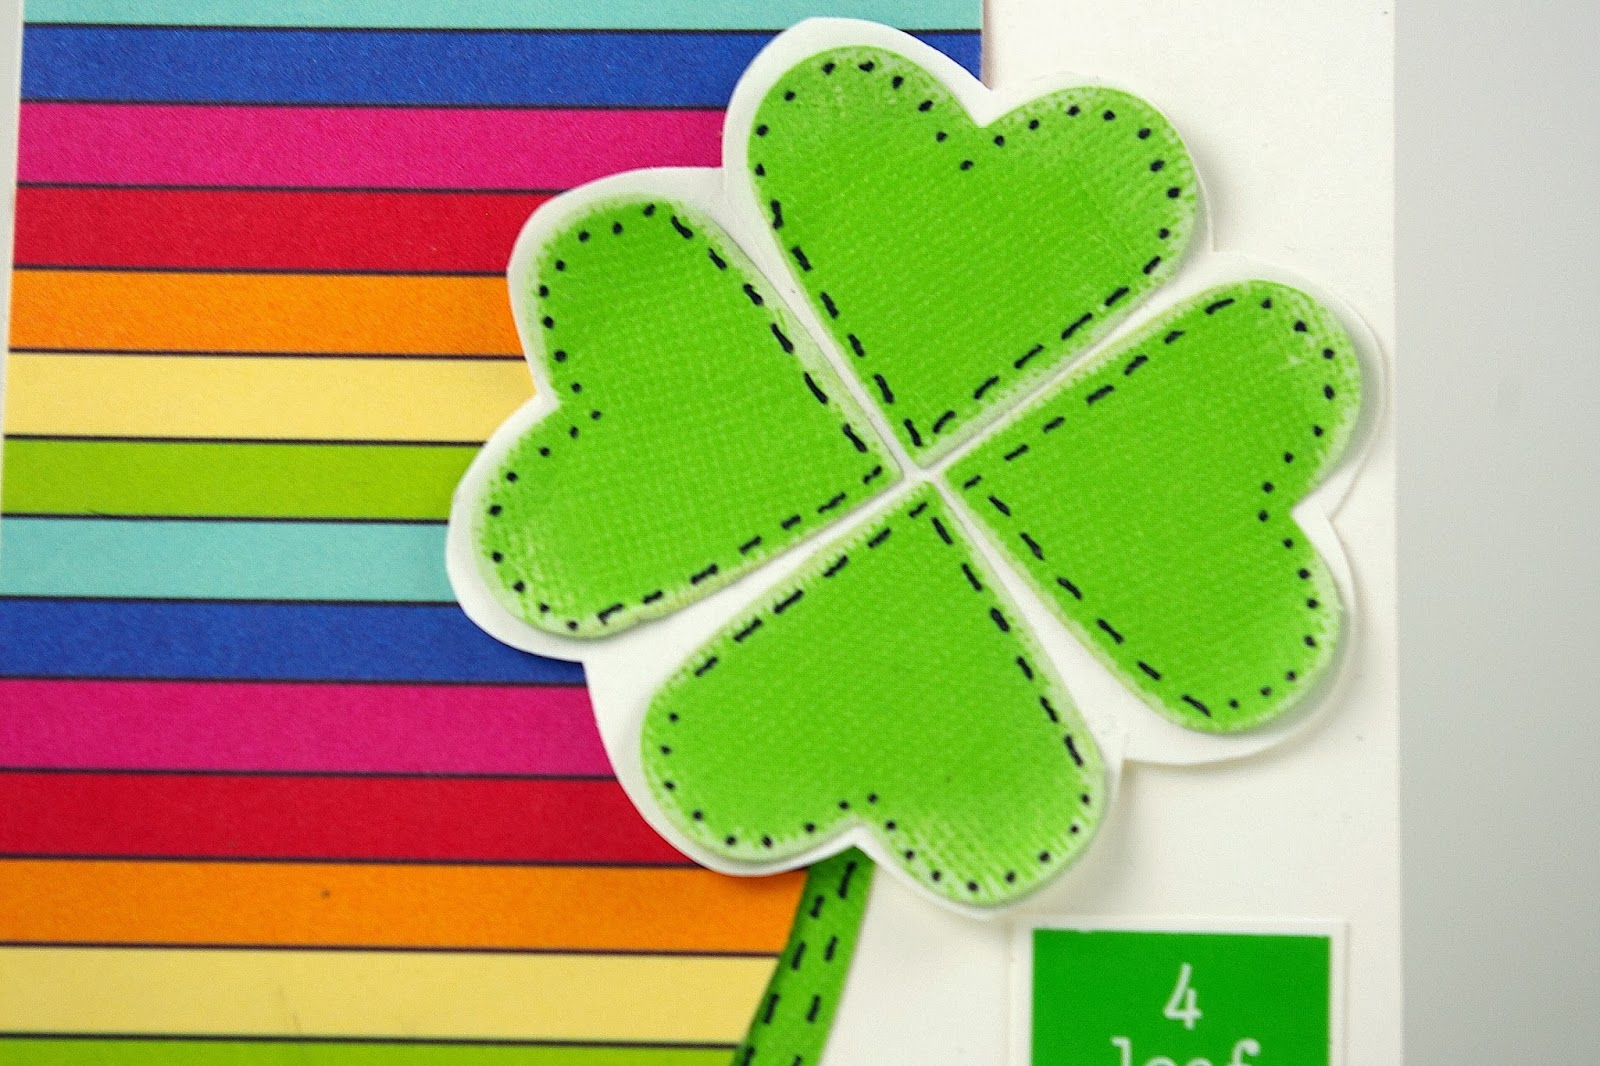 SRM Stickers Blog - St. Paddy's Celebration by Michelle - #card #stickers #SRM #clear box #food safe #St. Patrick's Day #party #treats